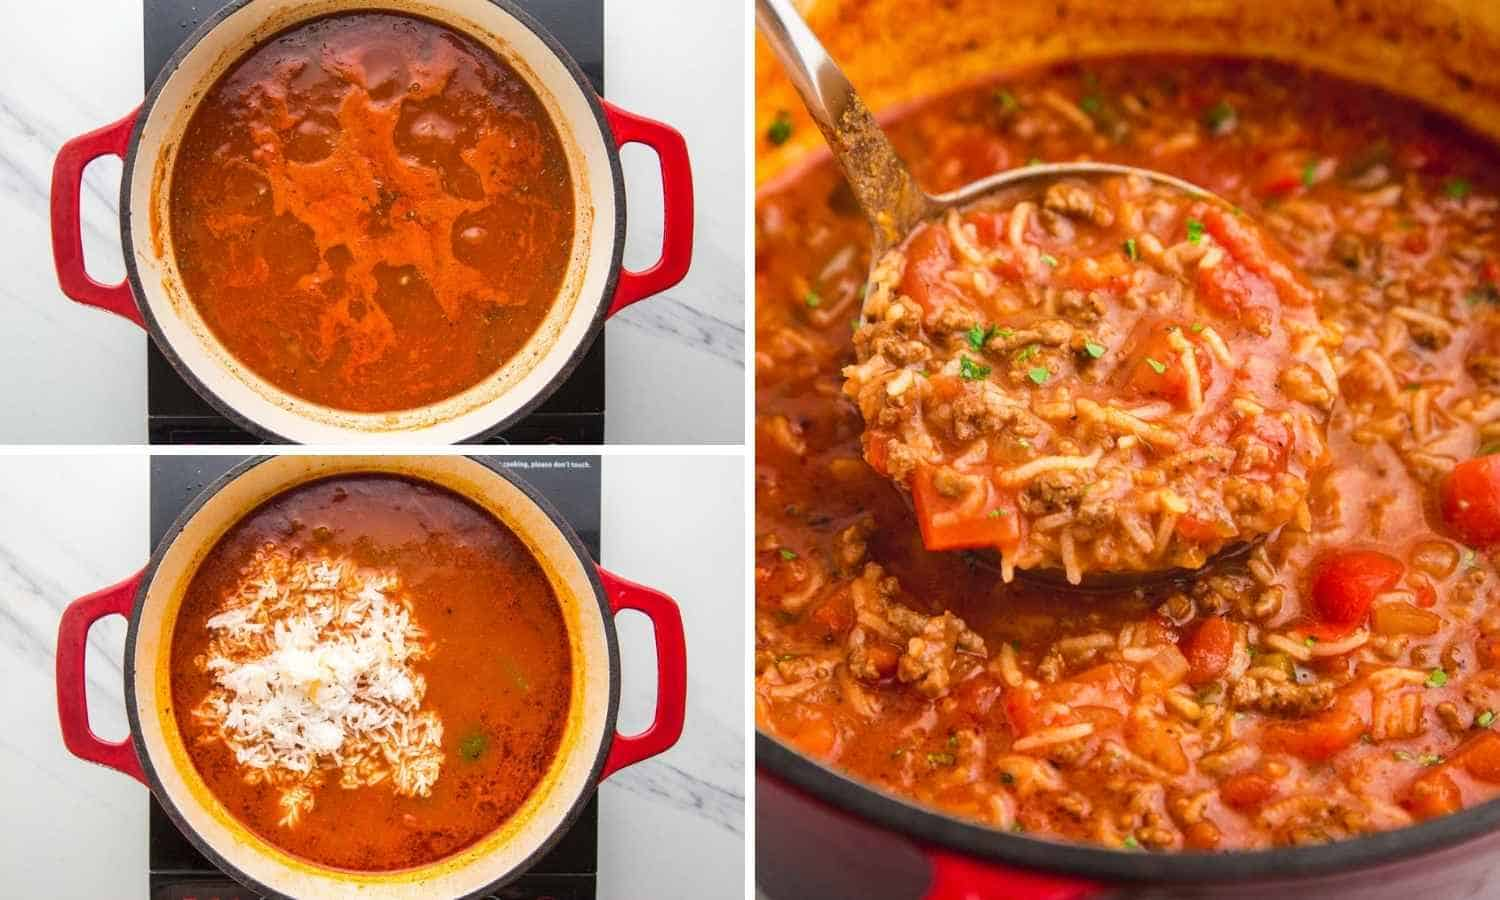 Collage of three images showing how to simmer the soup, add the rice, and mix it in the soup.